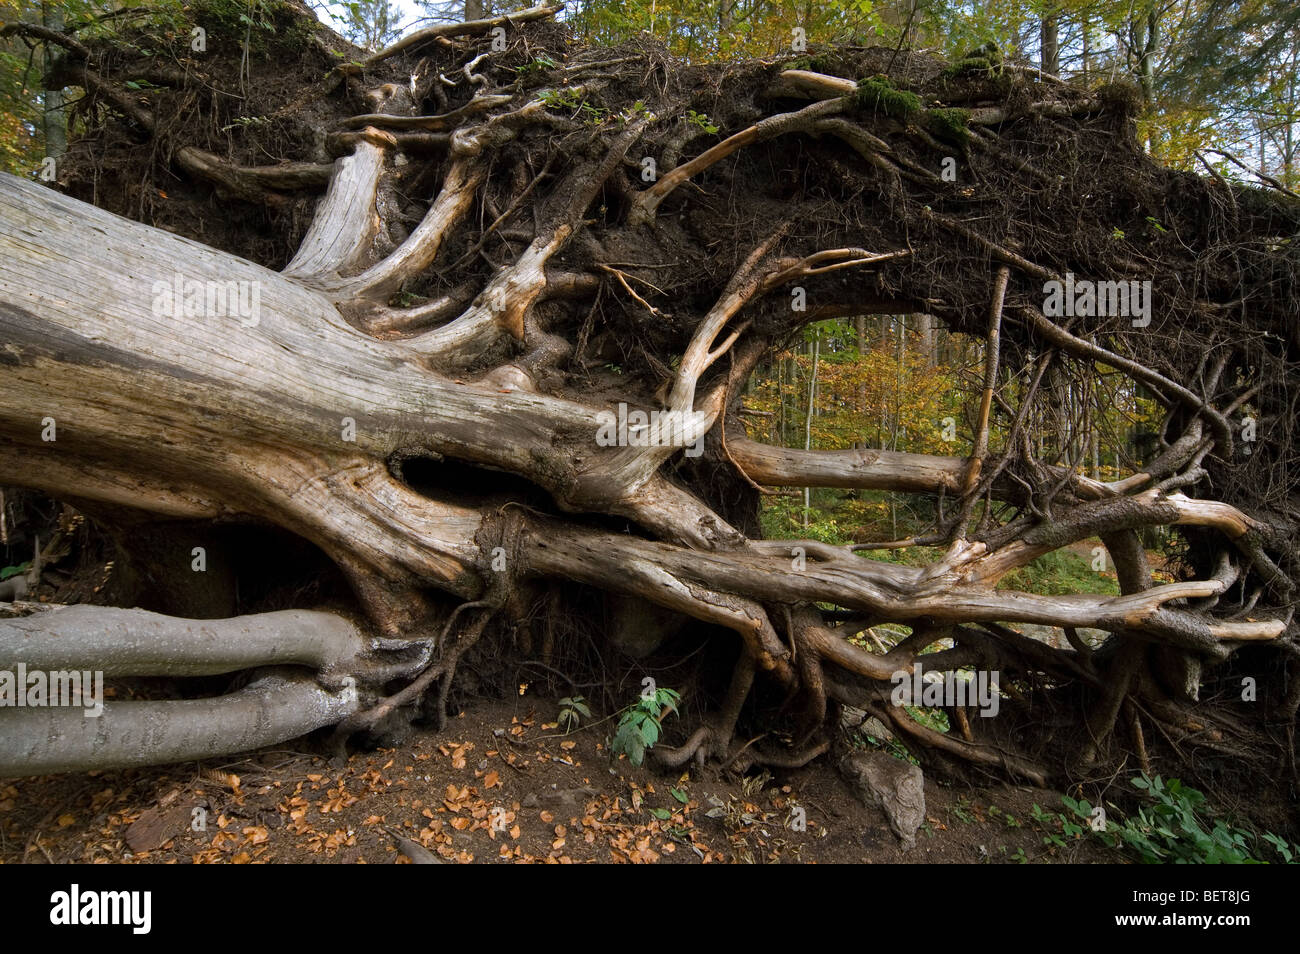 Fallen beech tree (Fagus sylvatica) exposing roots in autumn forest, Germany. - Stock Image